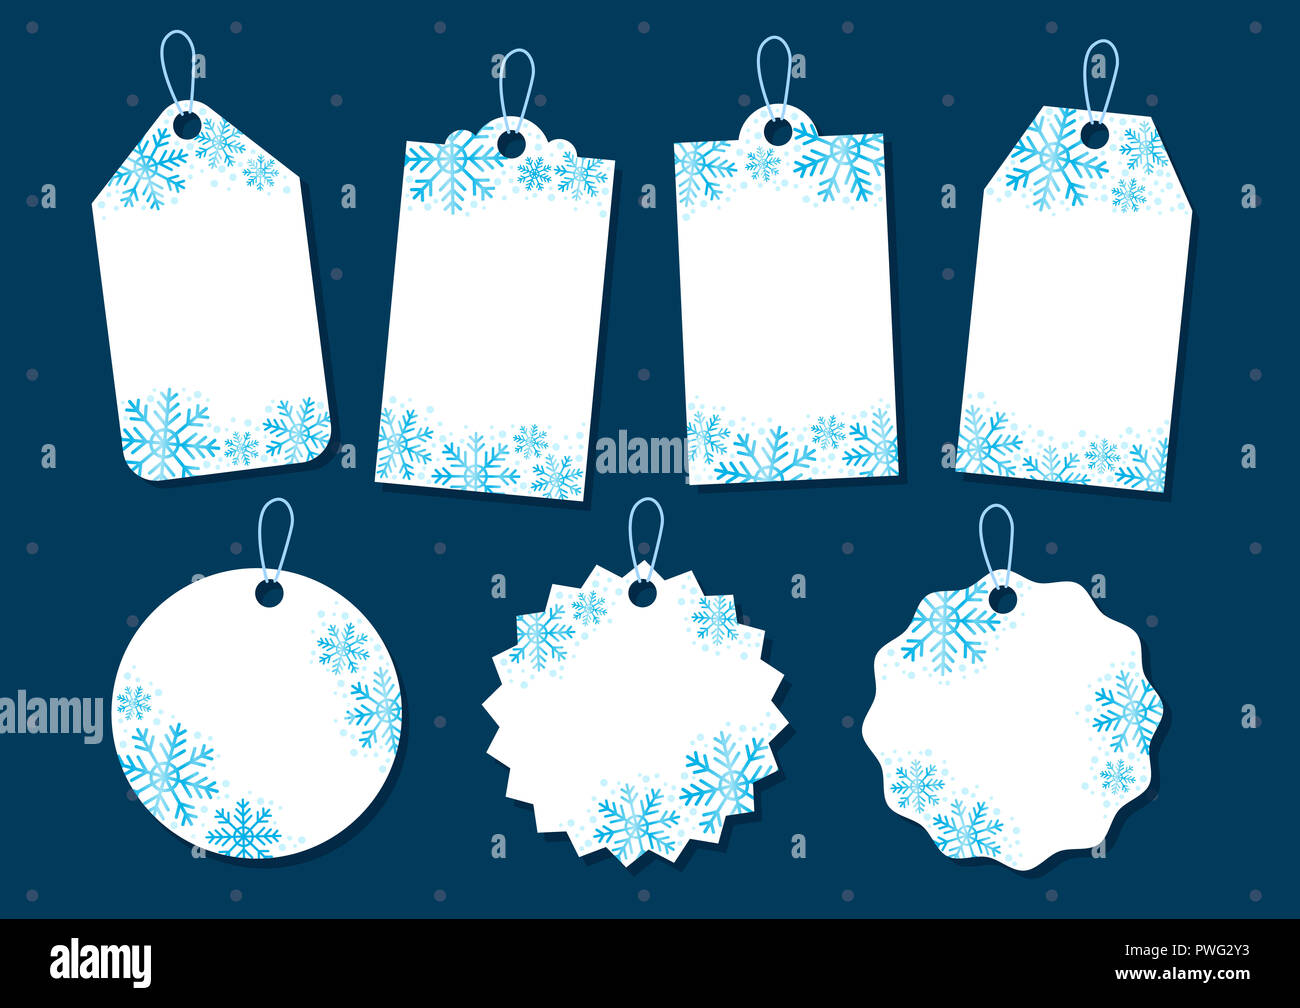 Snowflake christmas gift tag collection for sale promotion and gift ...